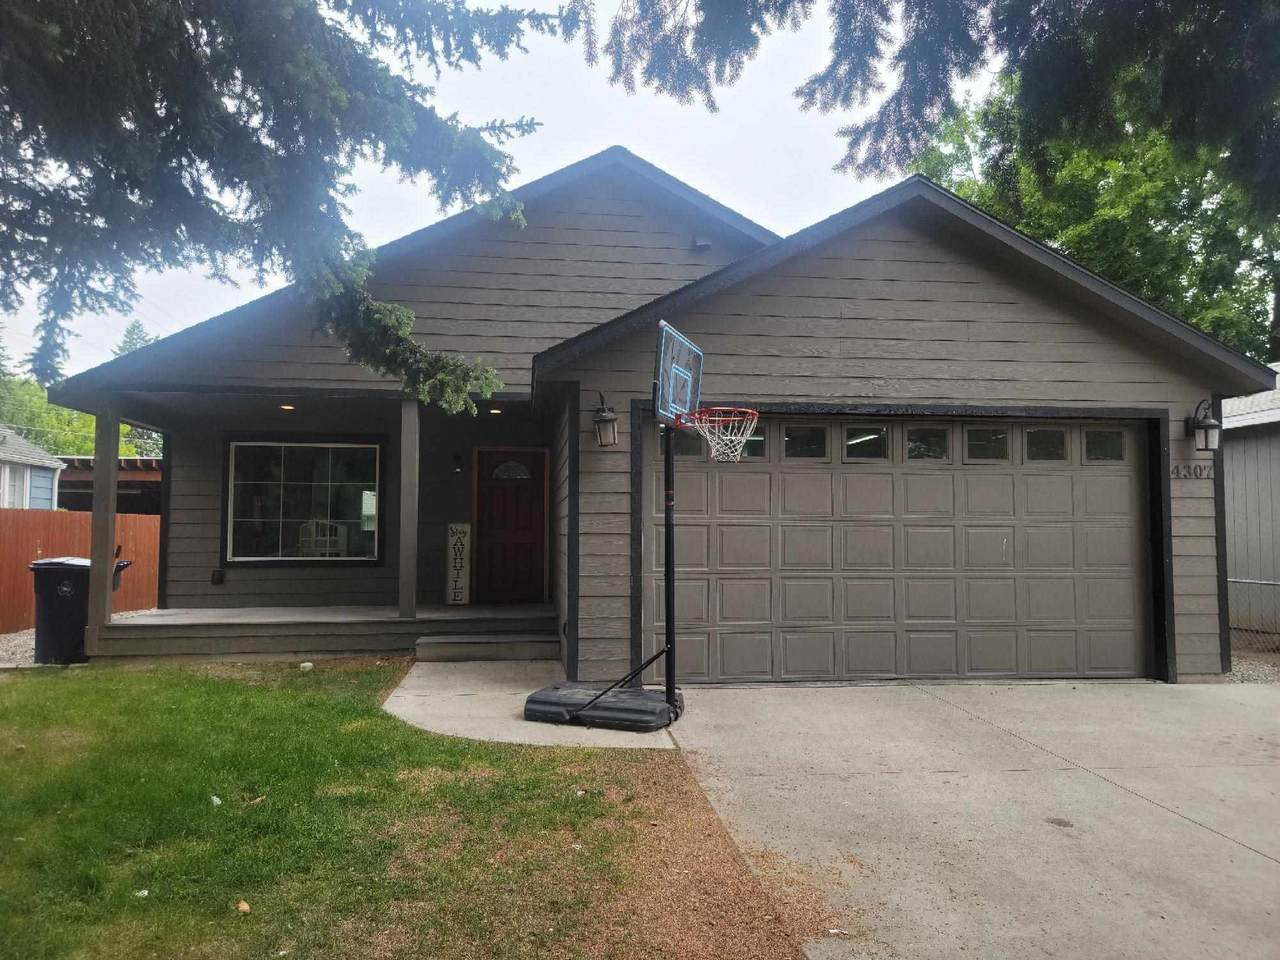 4307 8th Ave - Photo 1